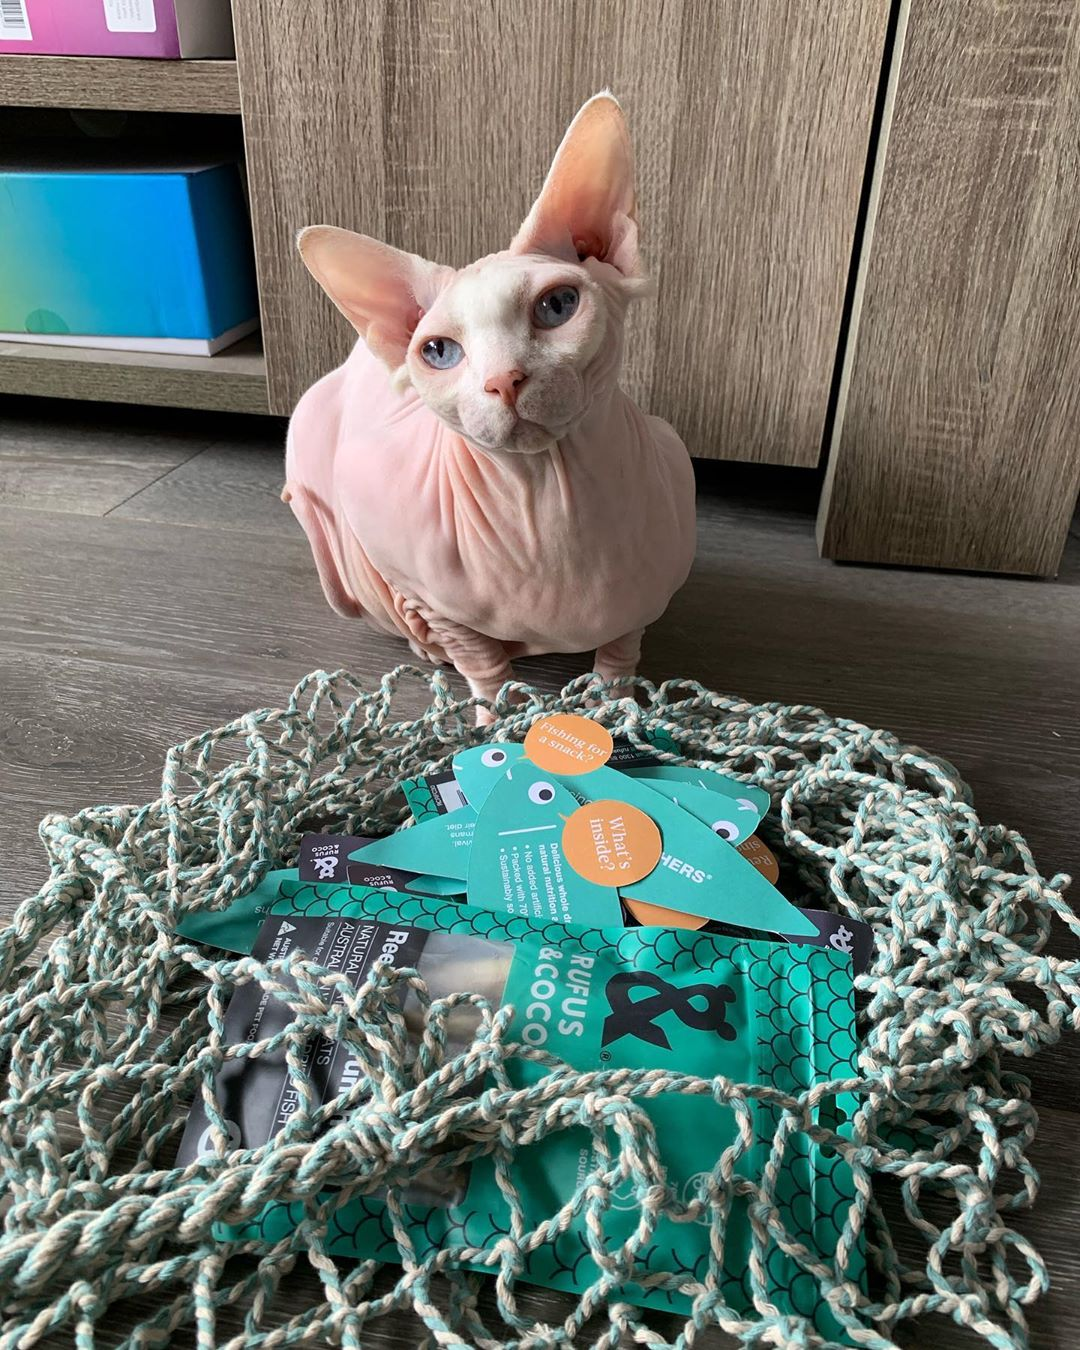 clementinethesphynx with Reel Fish cat treats by Rufus and Coco